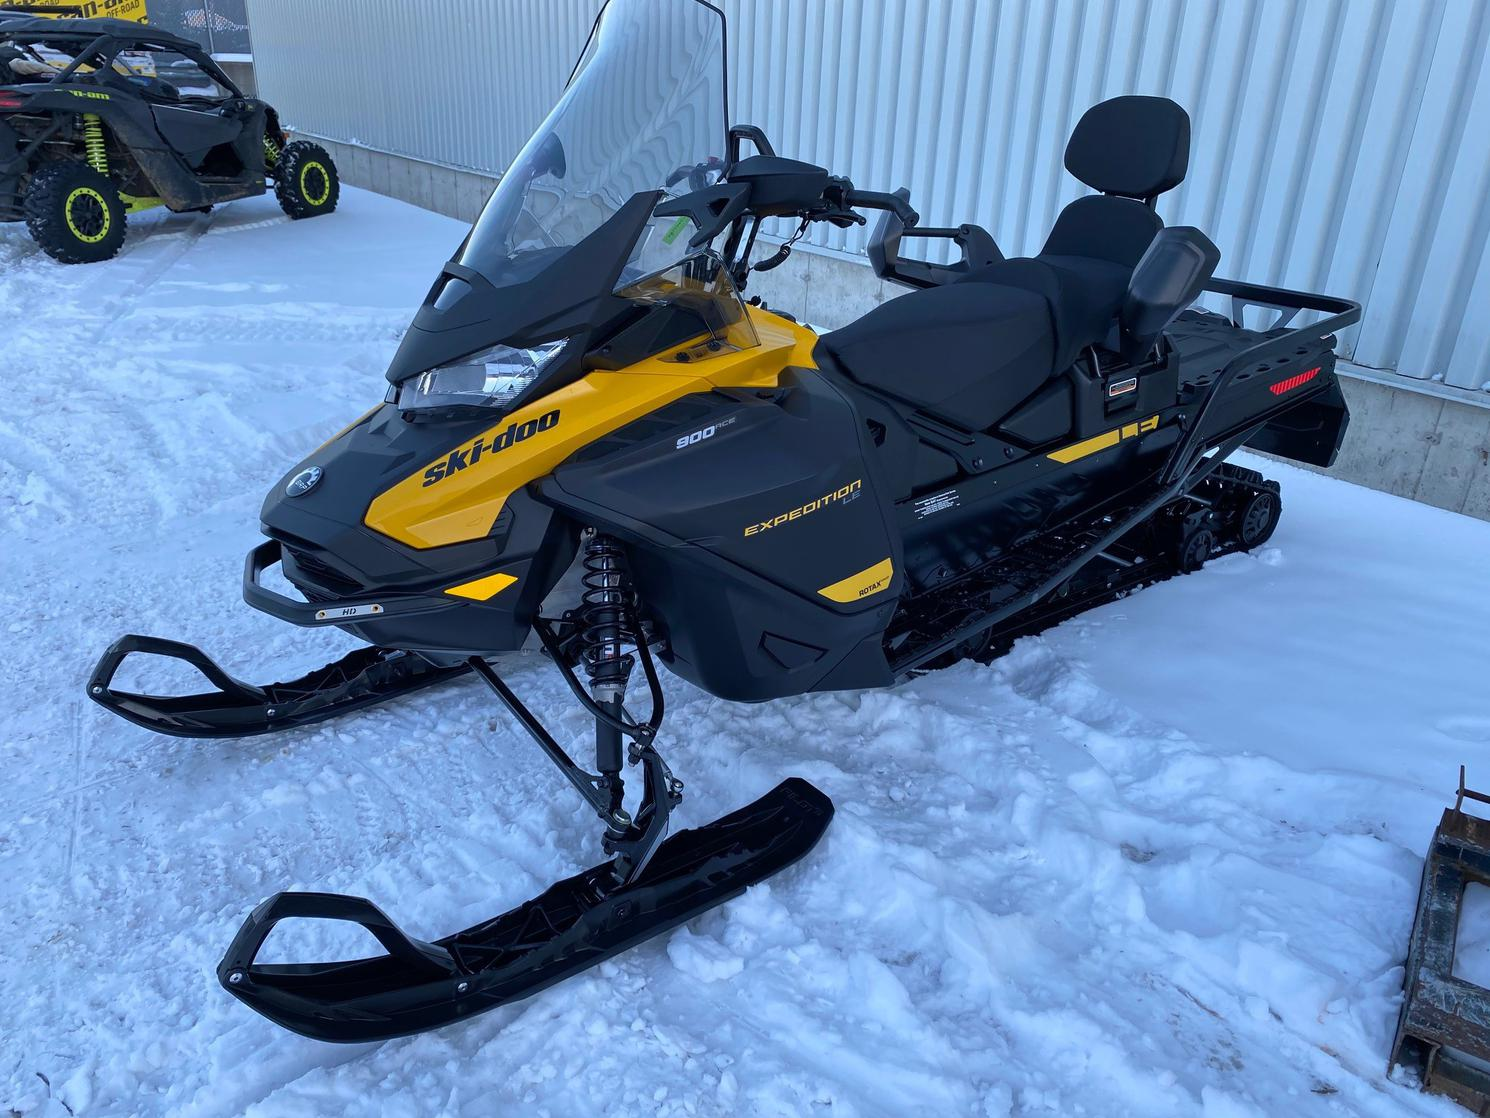 2021 Ski-Doo EXPEDITION LE 900 ACE WIDE TRACk 20 »